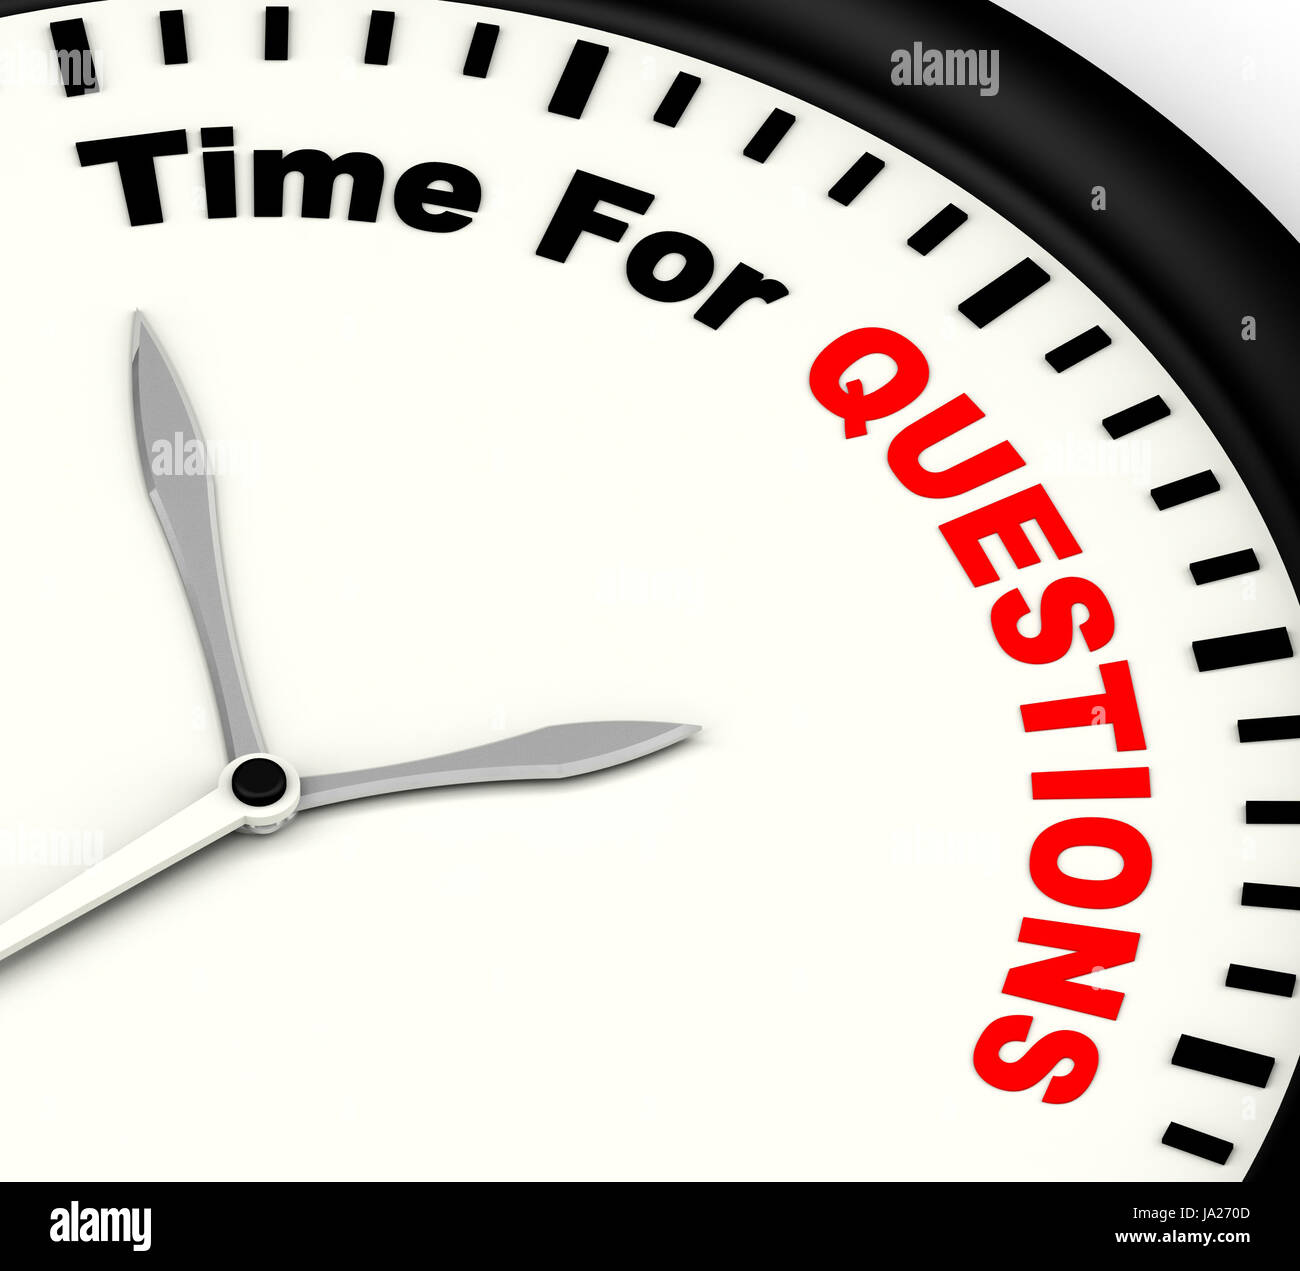 query, asked, ask, question, demand, problem, solution, assistance, help, - Stock Image